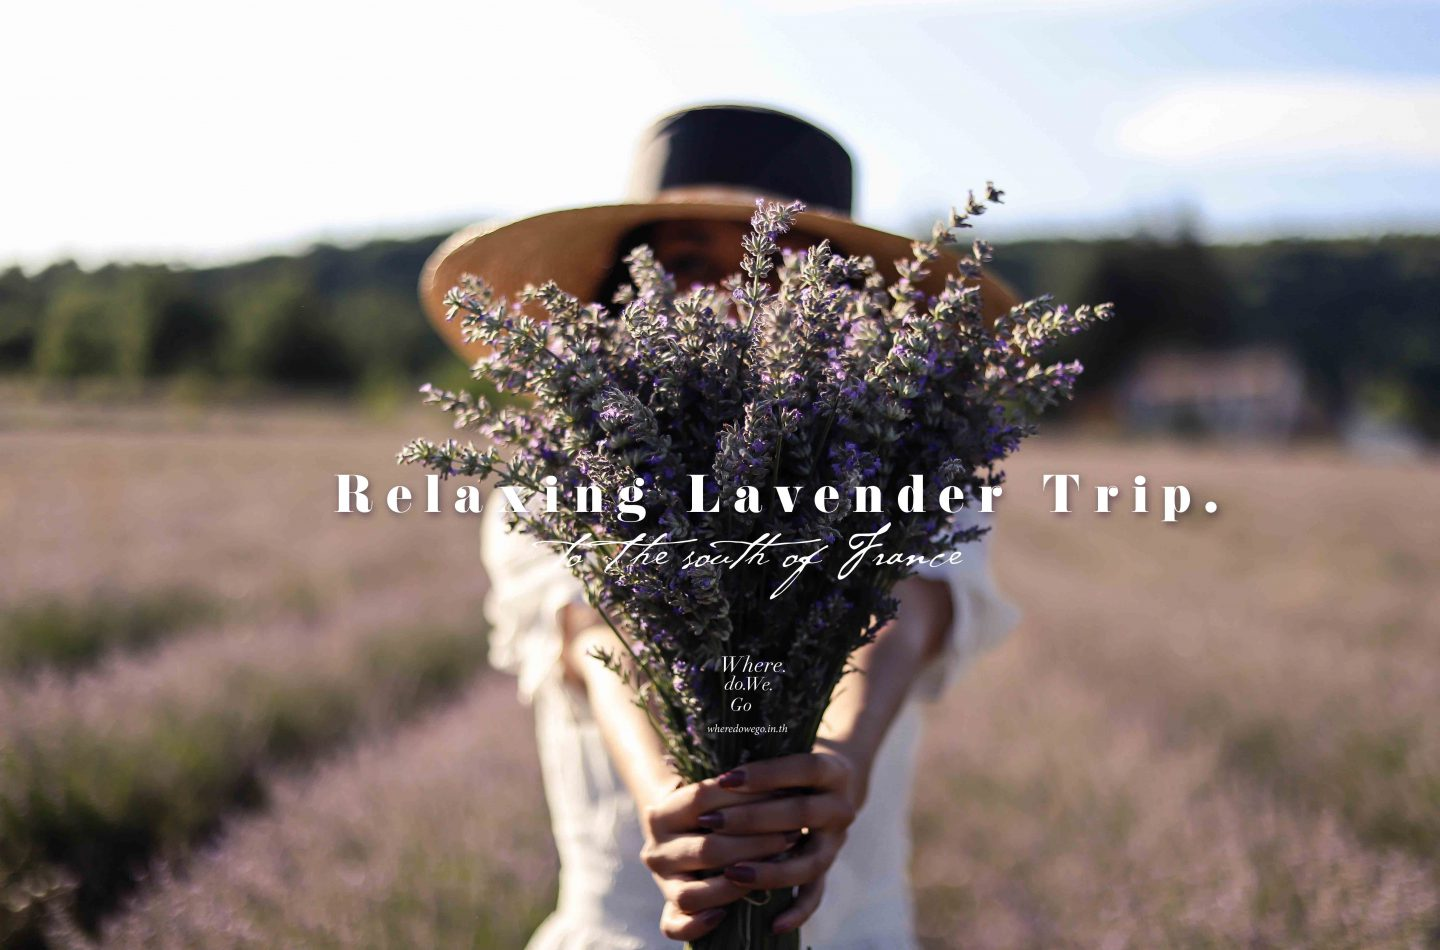 Protected: To The South of France, Relaxing Lavender Trip